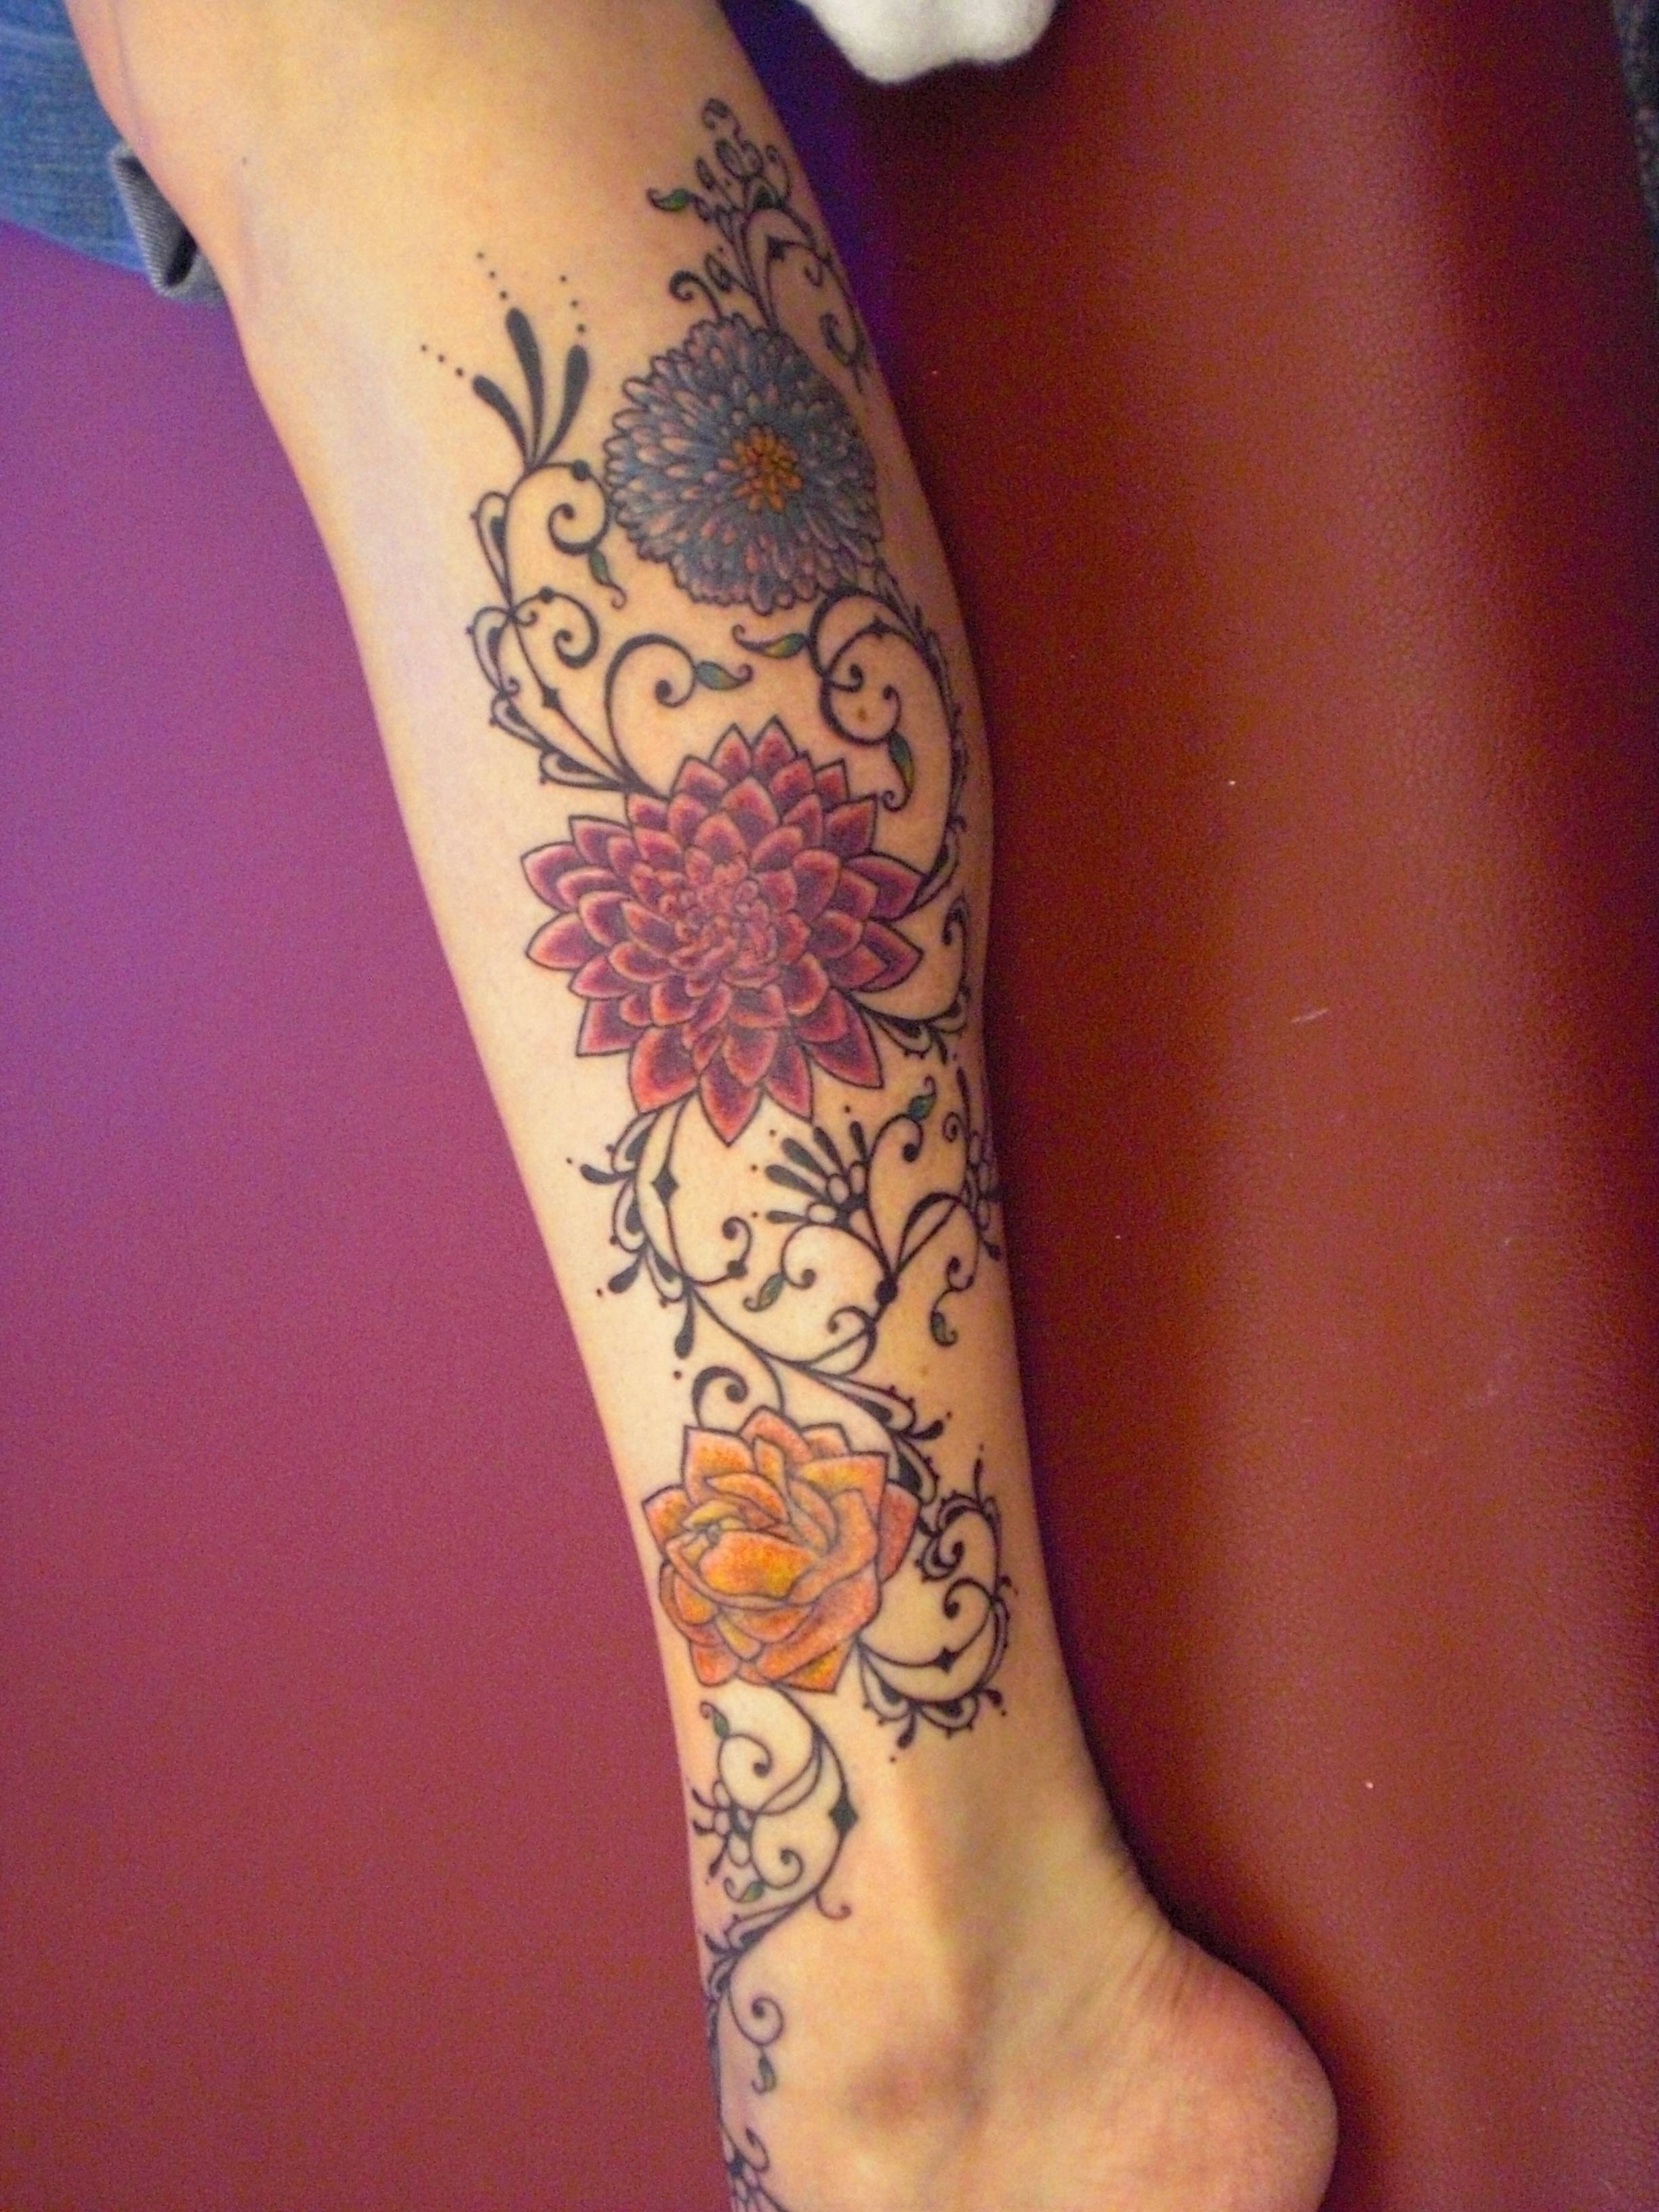 The Most Beautiful Tattoo Designs on Leg For Girls